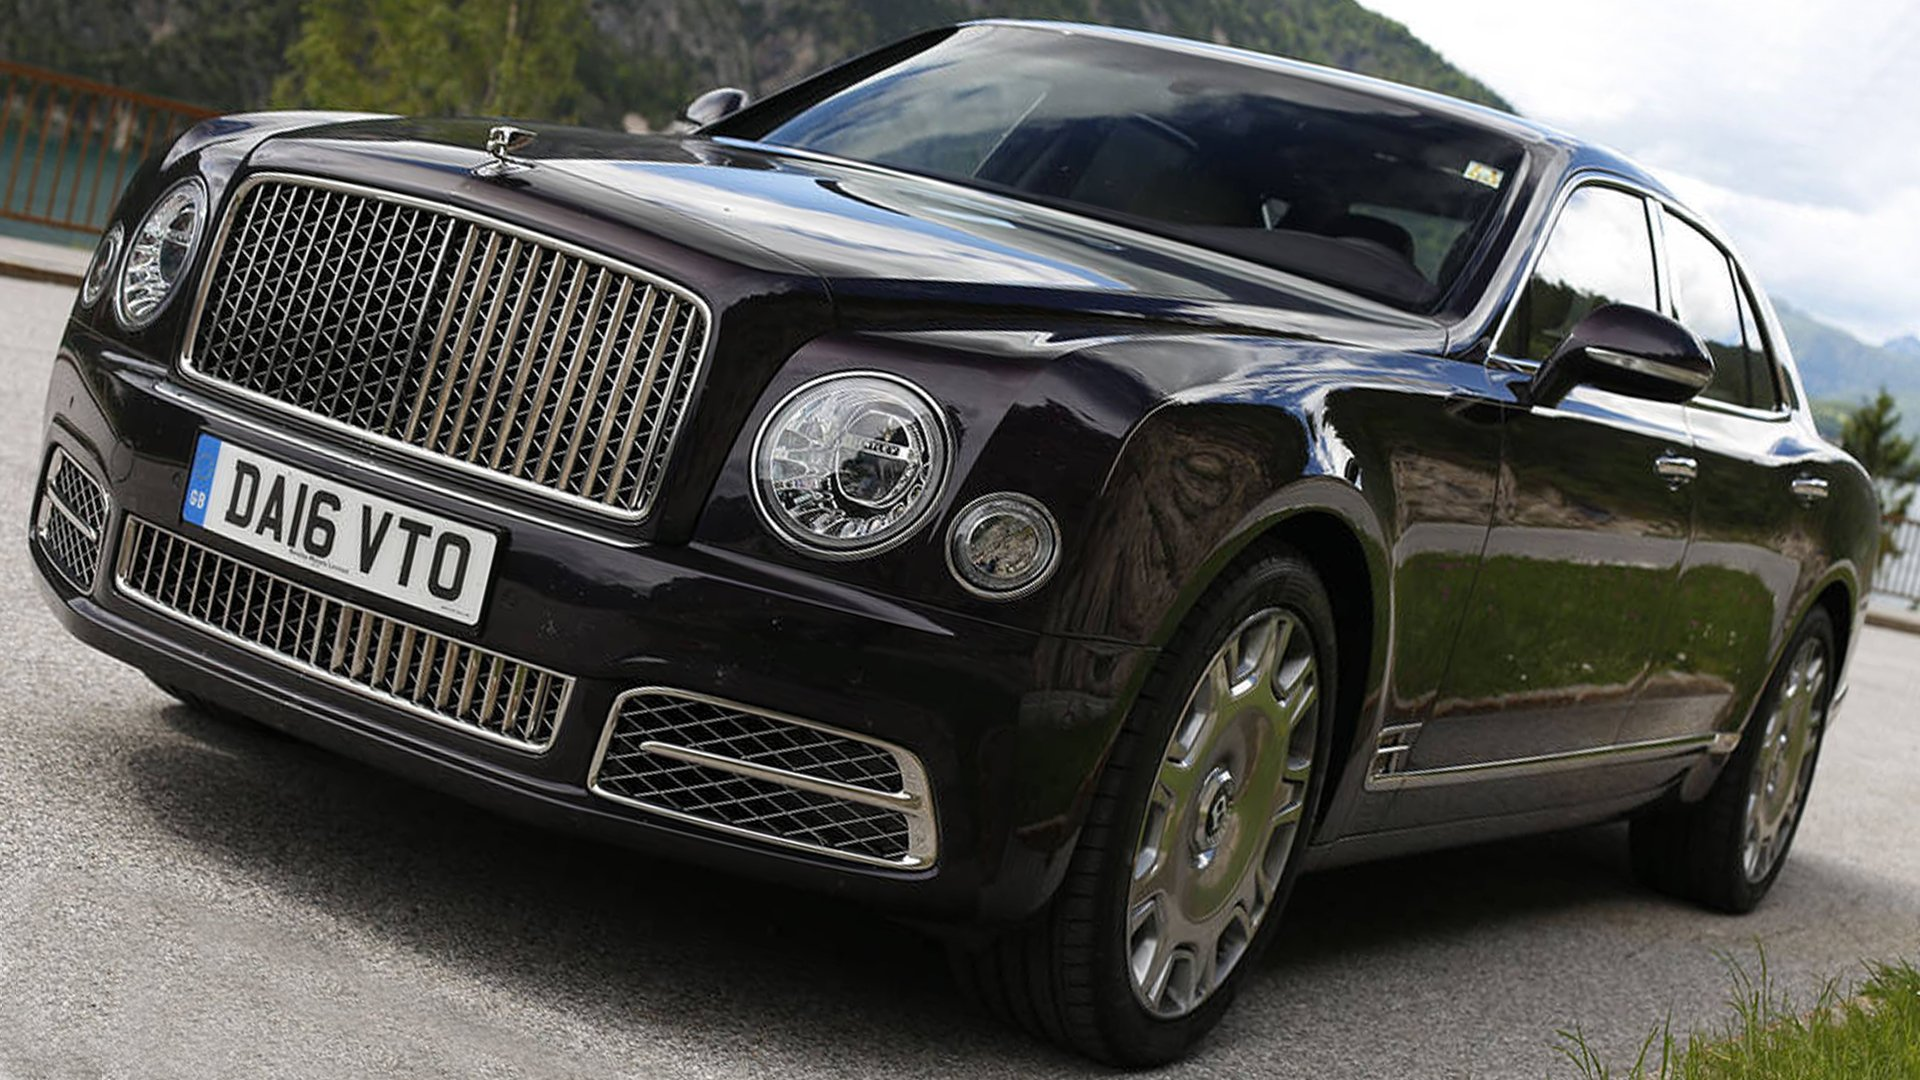 Black Bentley Mulsanne 2019 Full HD